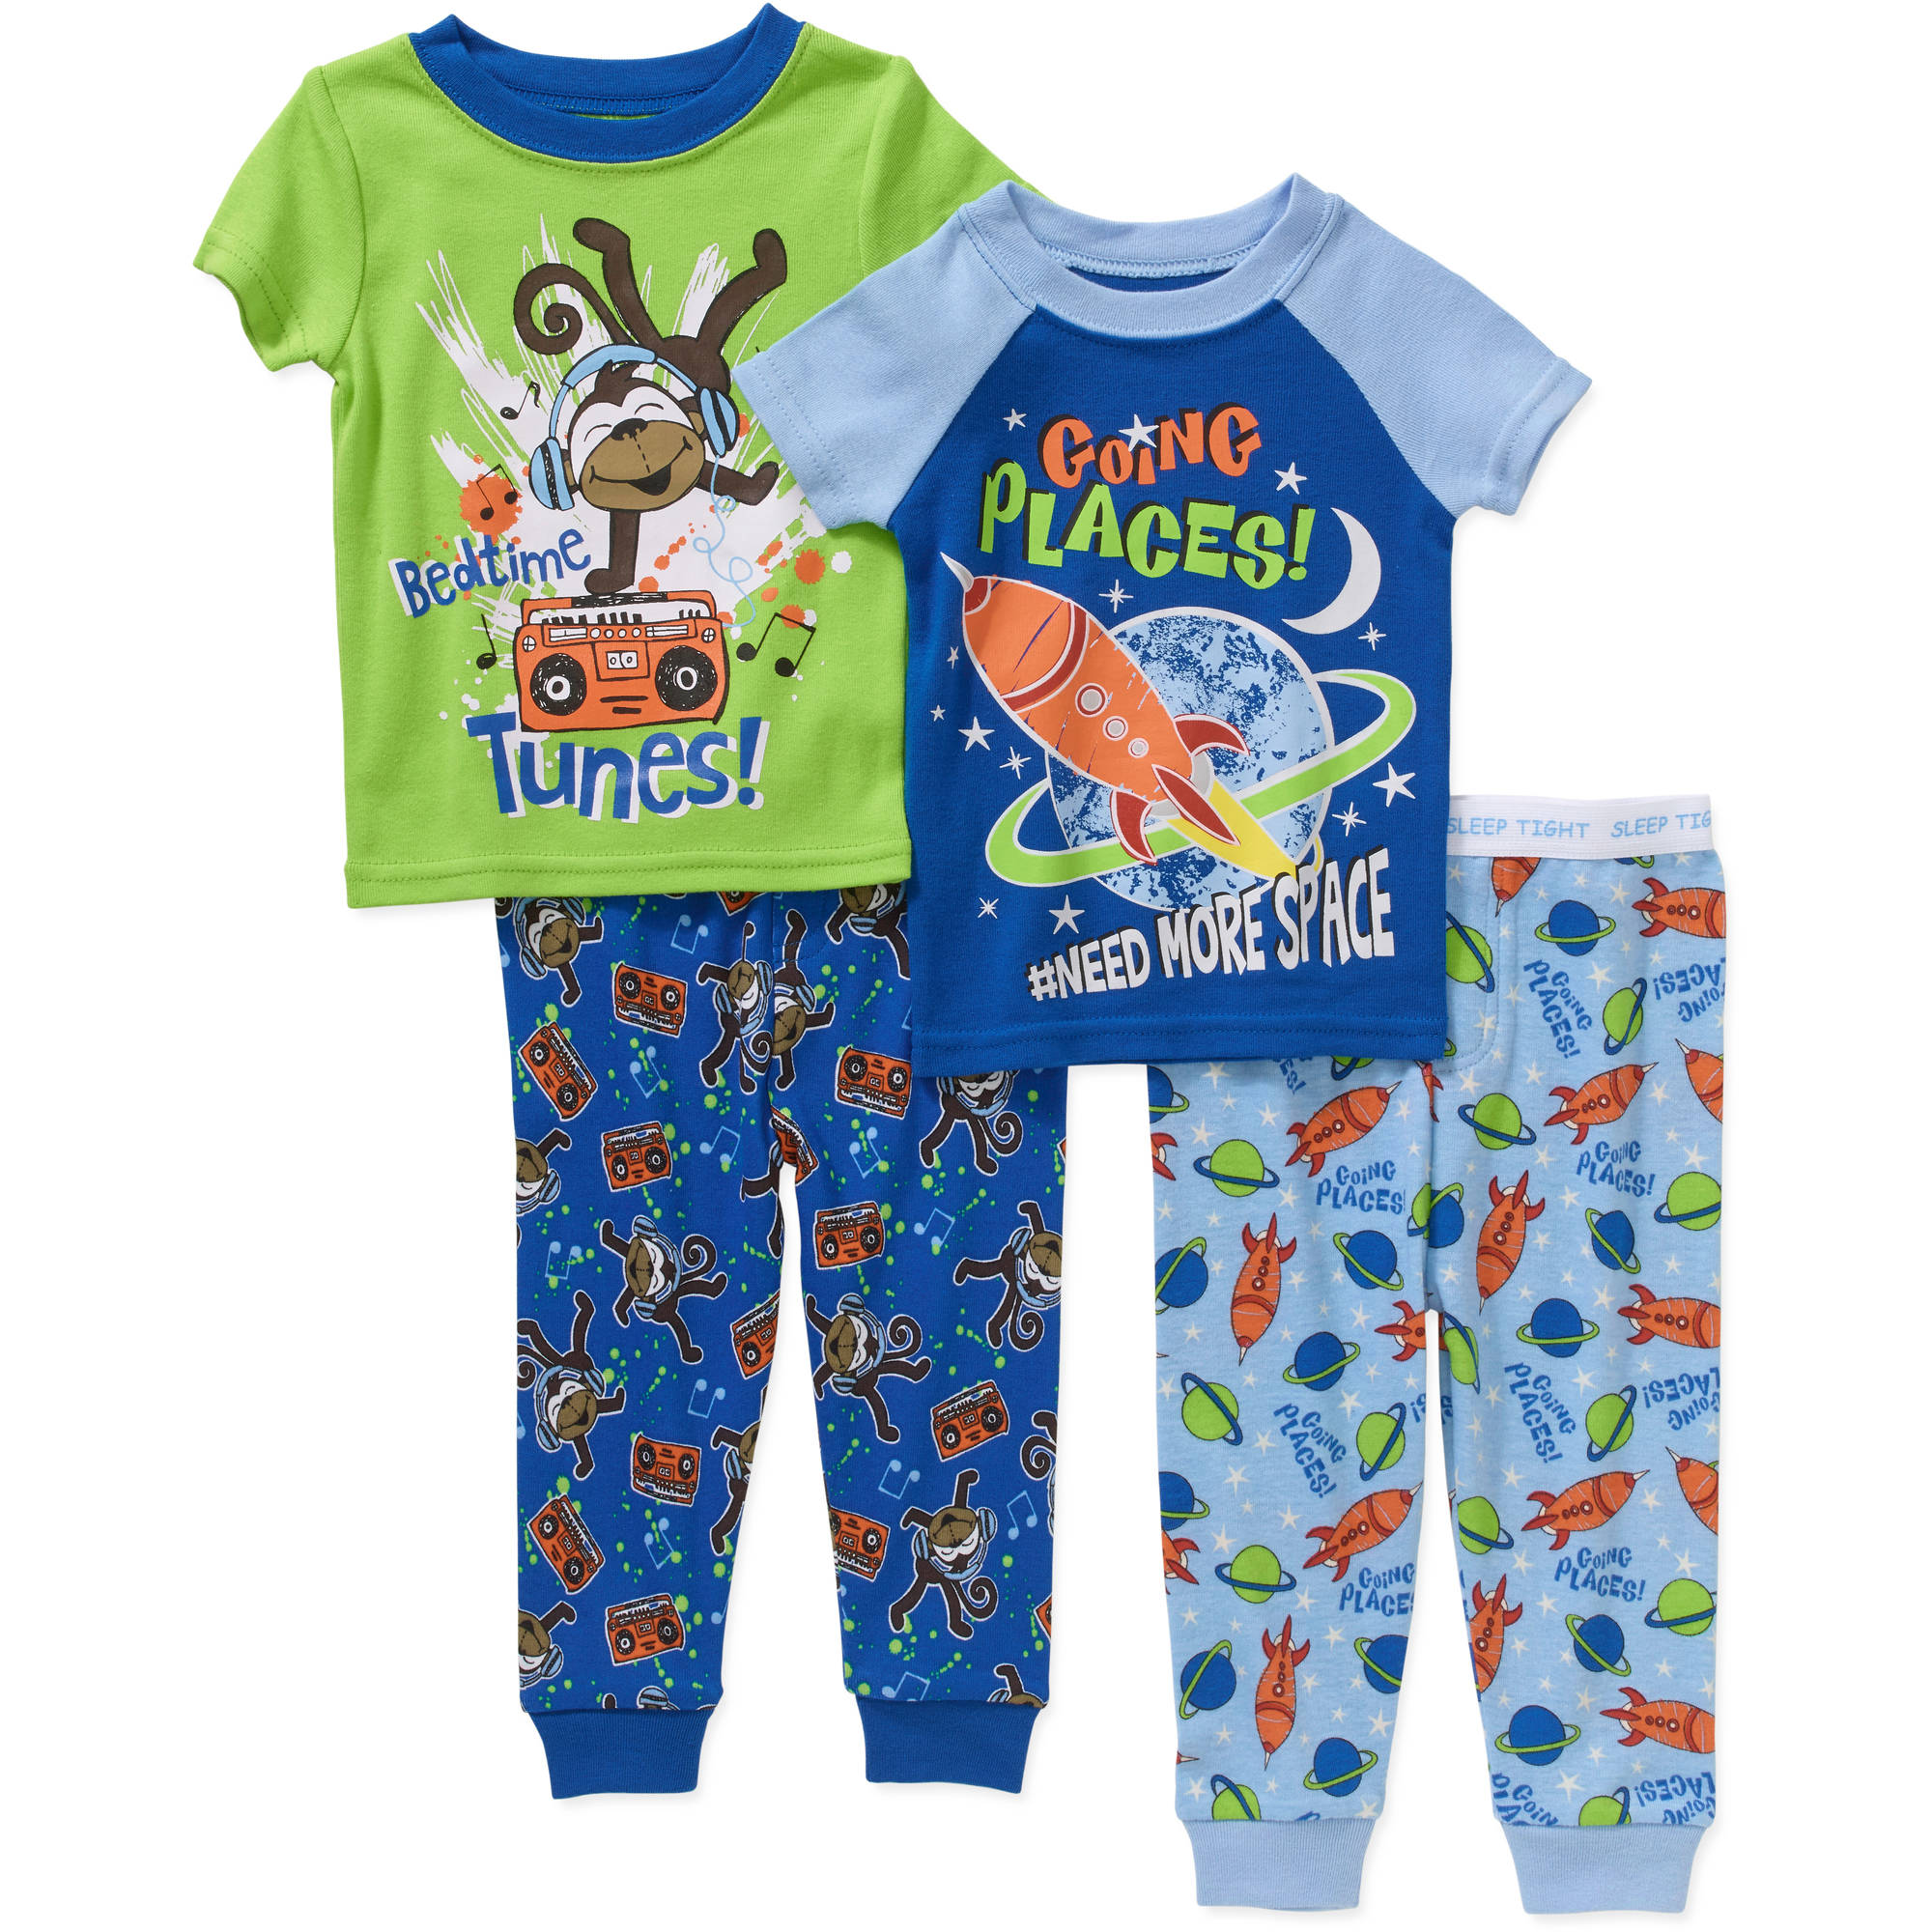 Garanimals Newborn Baby Boy Tight-Fit Cotton Pajamas,4-Piece Set